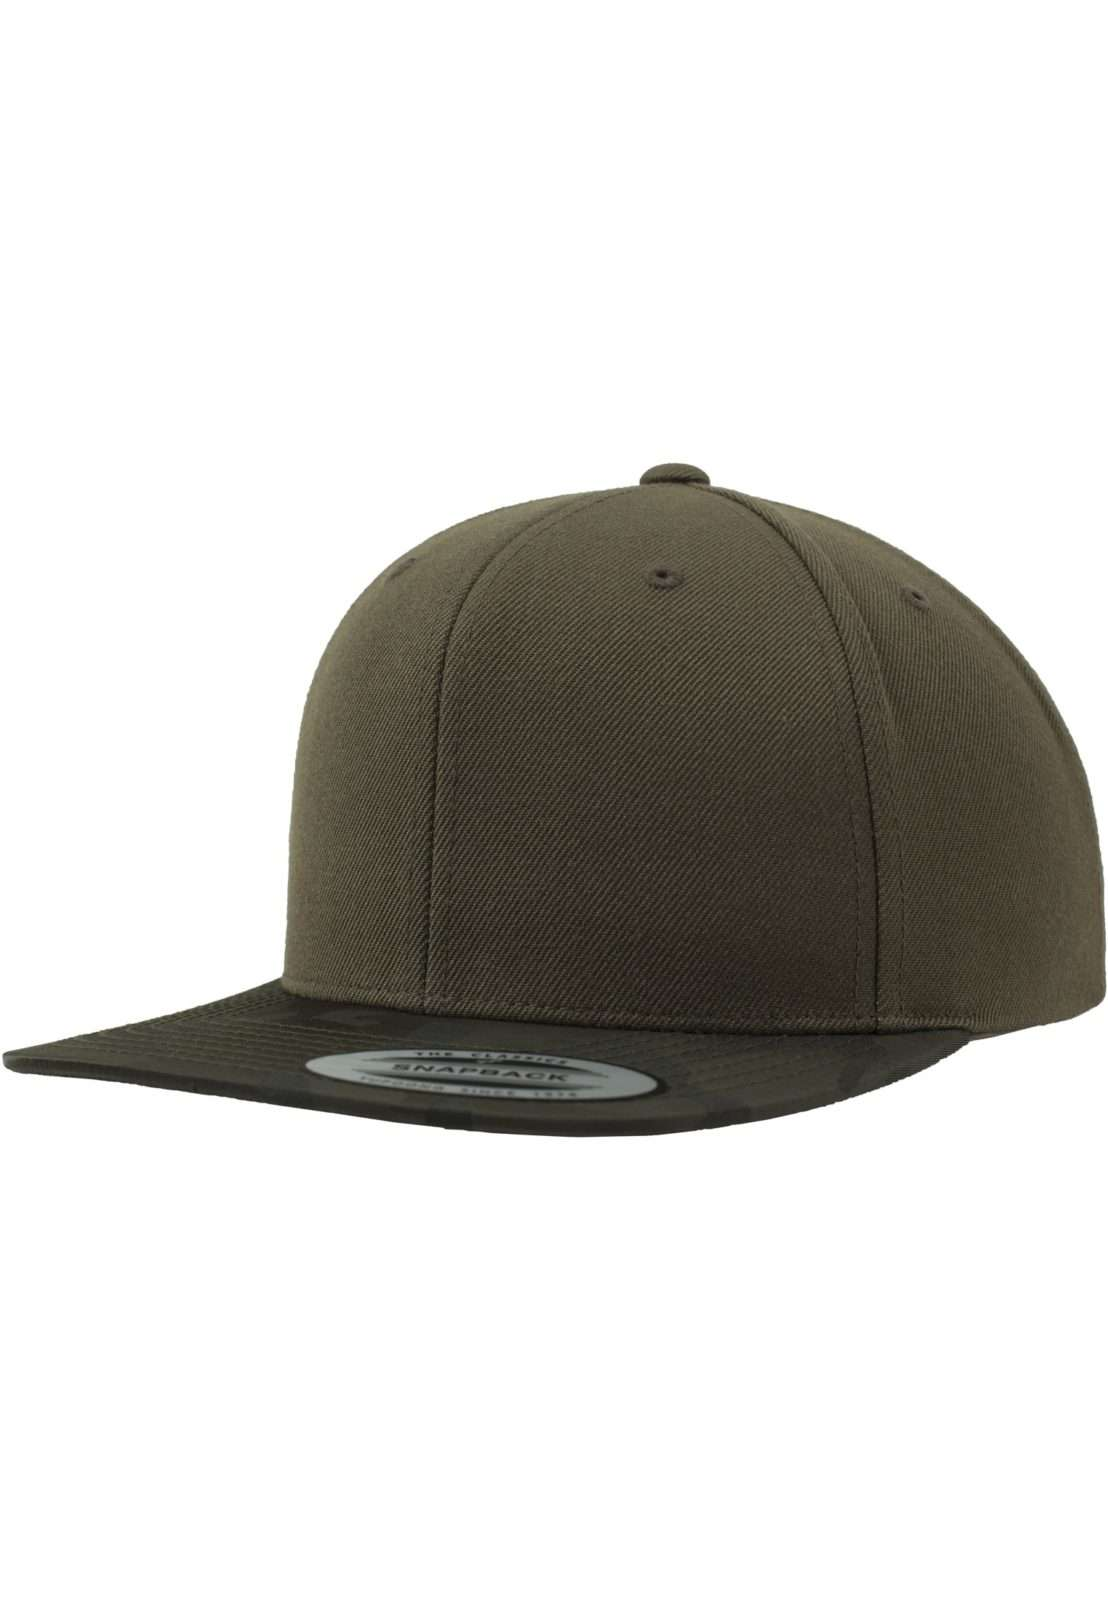 snapback cap camo olive online gestalten besticken lassen. Black Bedroom Furniture Sets. Home Design Ideas